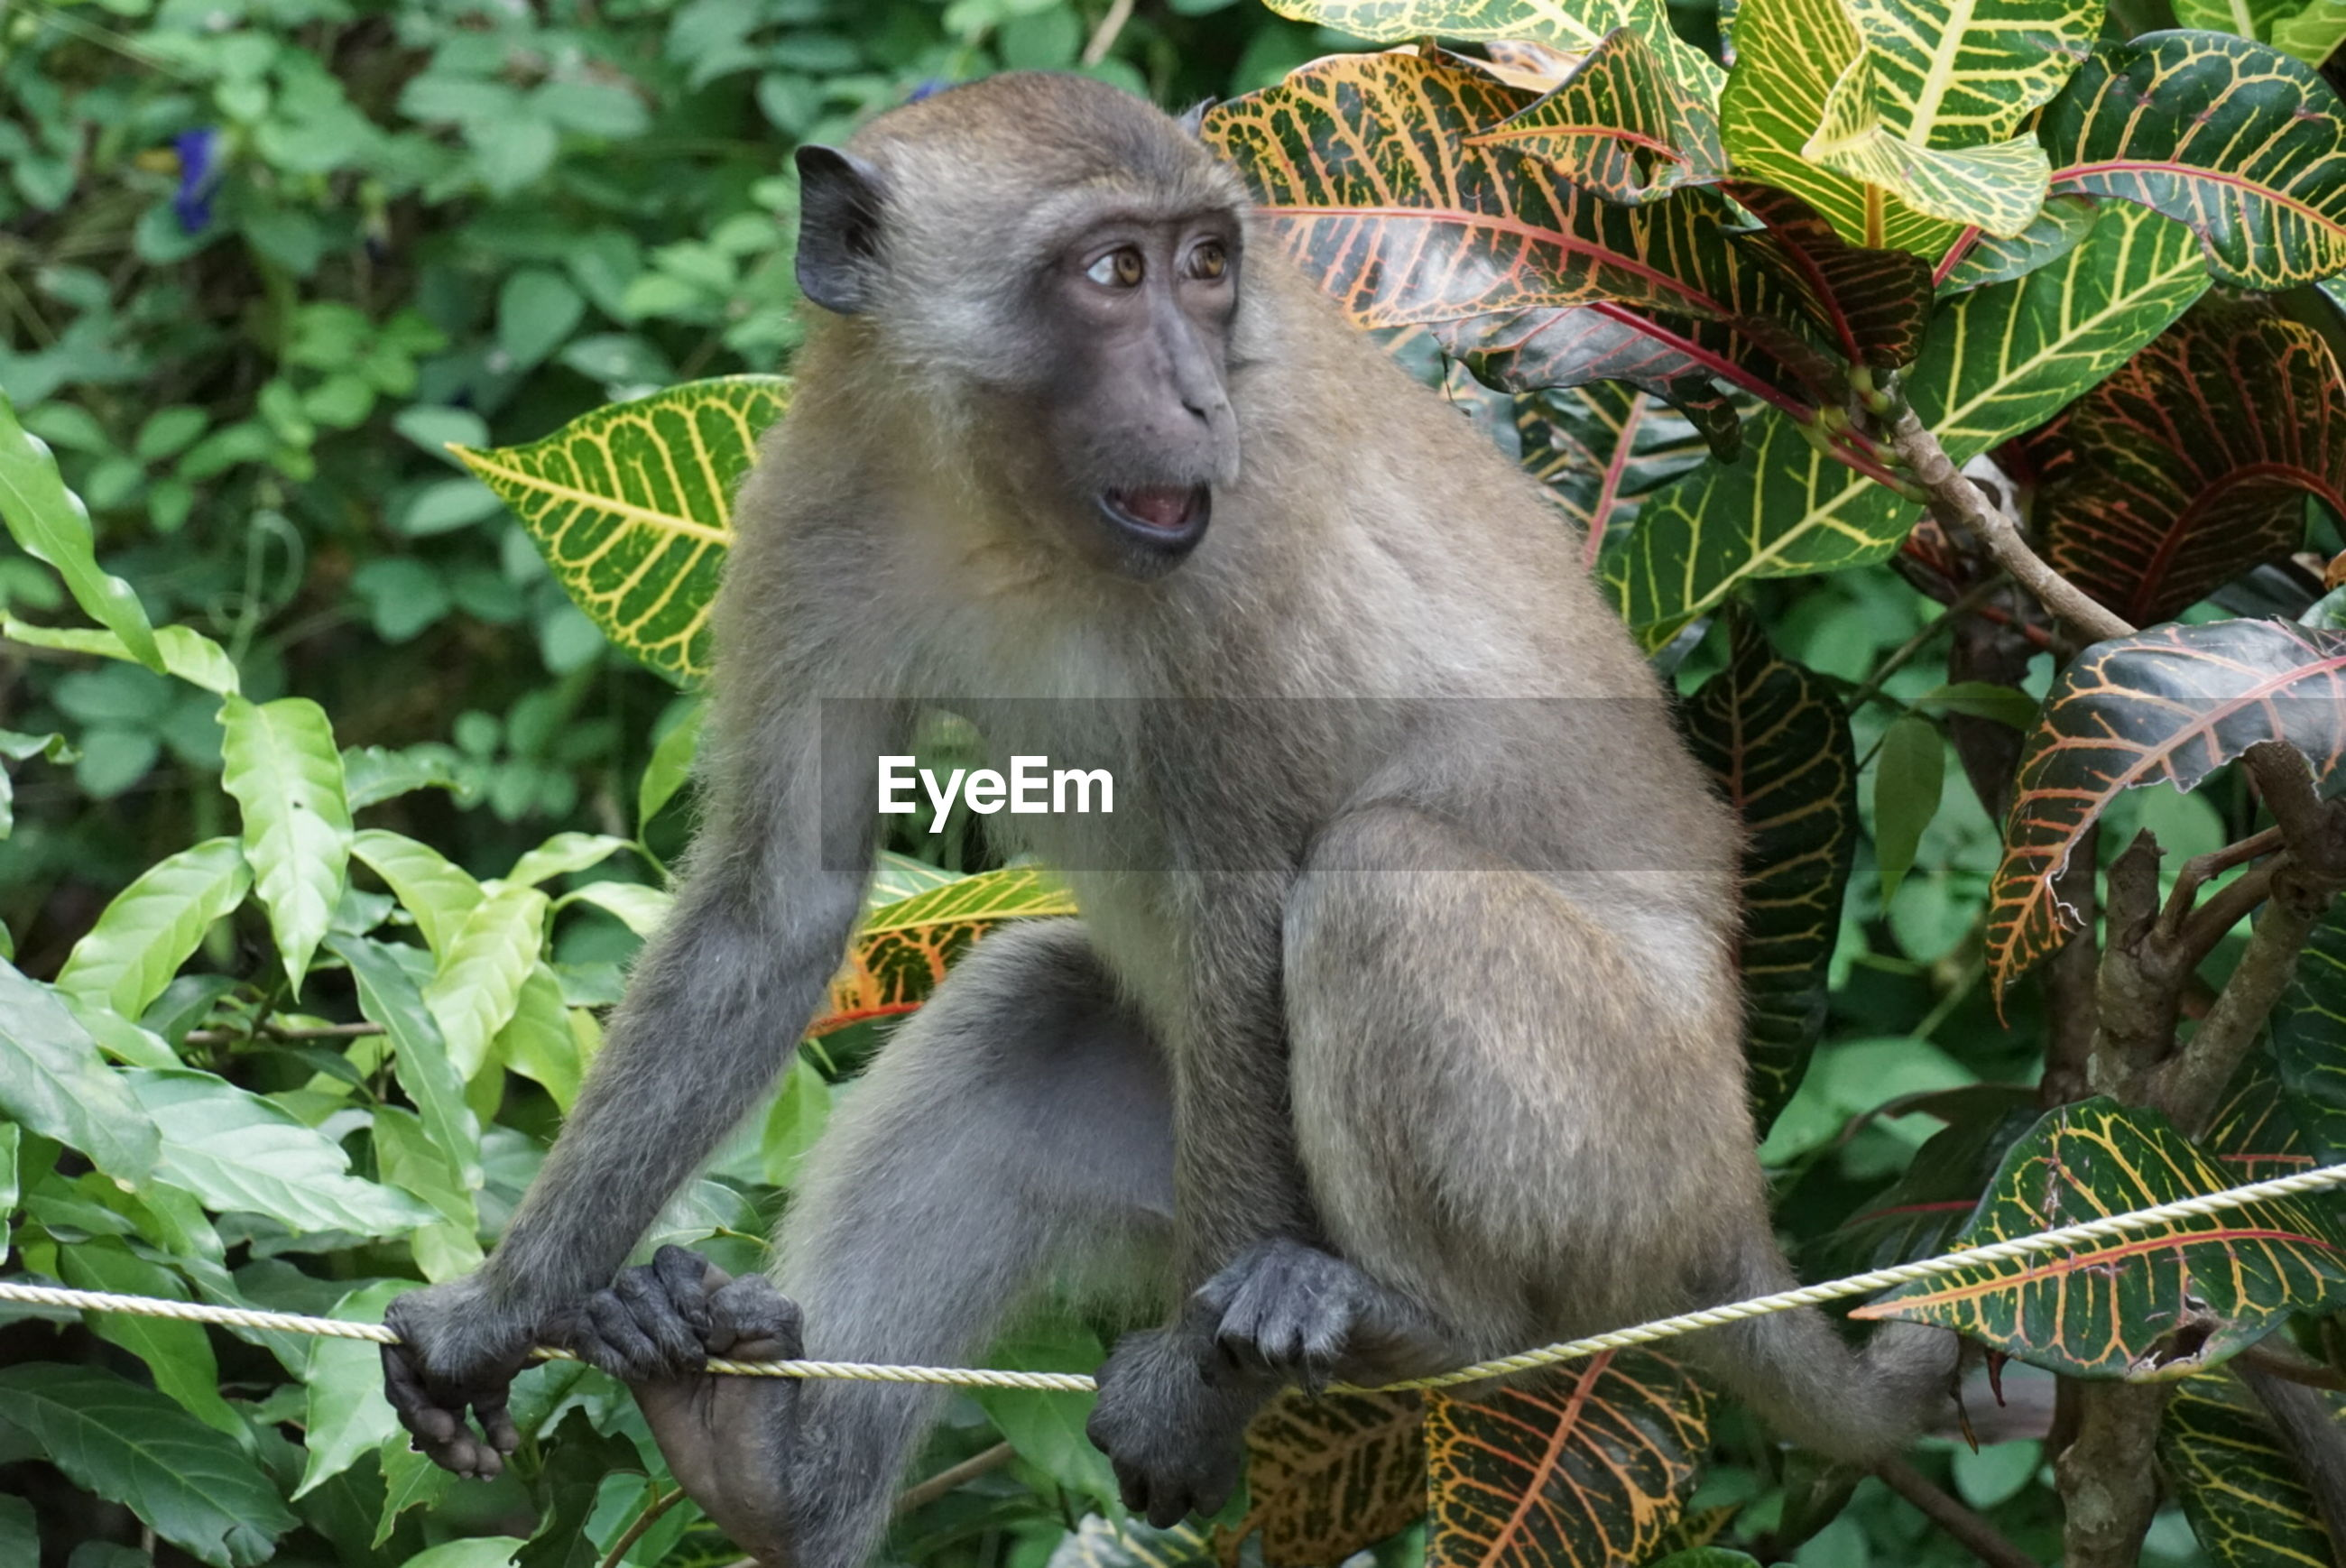 animals in the wild, animal wildlife, one animal, animal themes, mammal, monkey, day, nature, plant, outdoors, sitting, no people, full length, baboon, tree